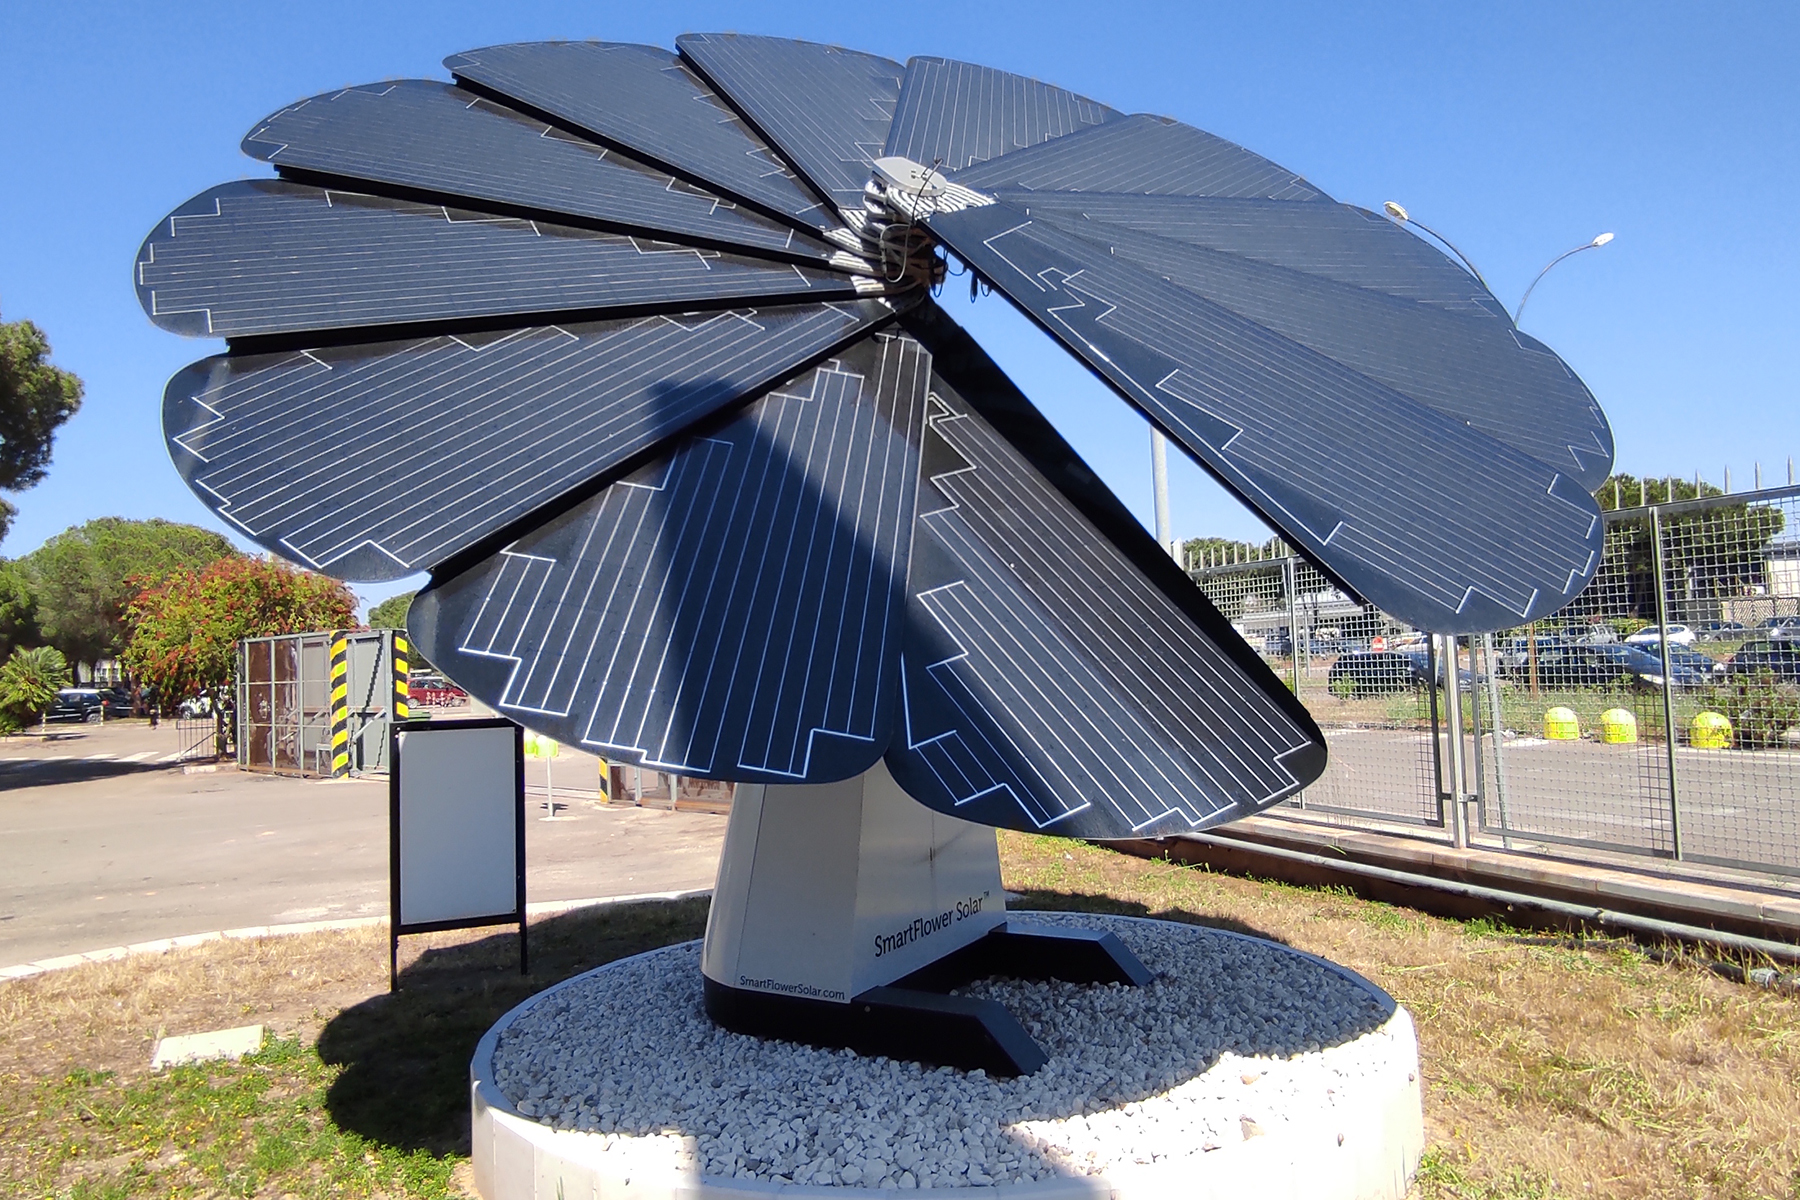 A Smart Flower to generate clean energy in manufacturing facilities